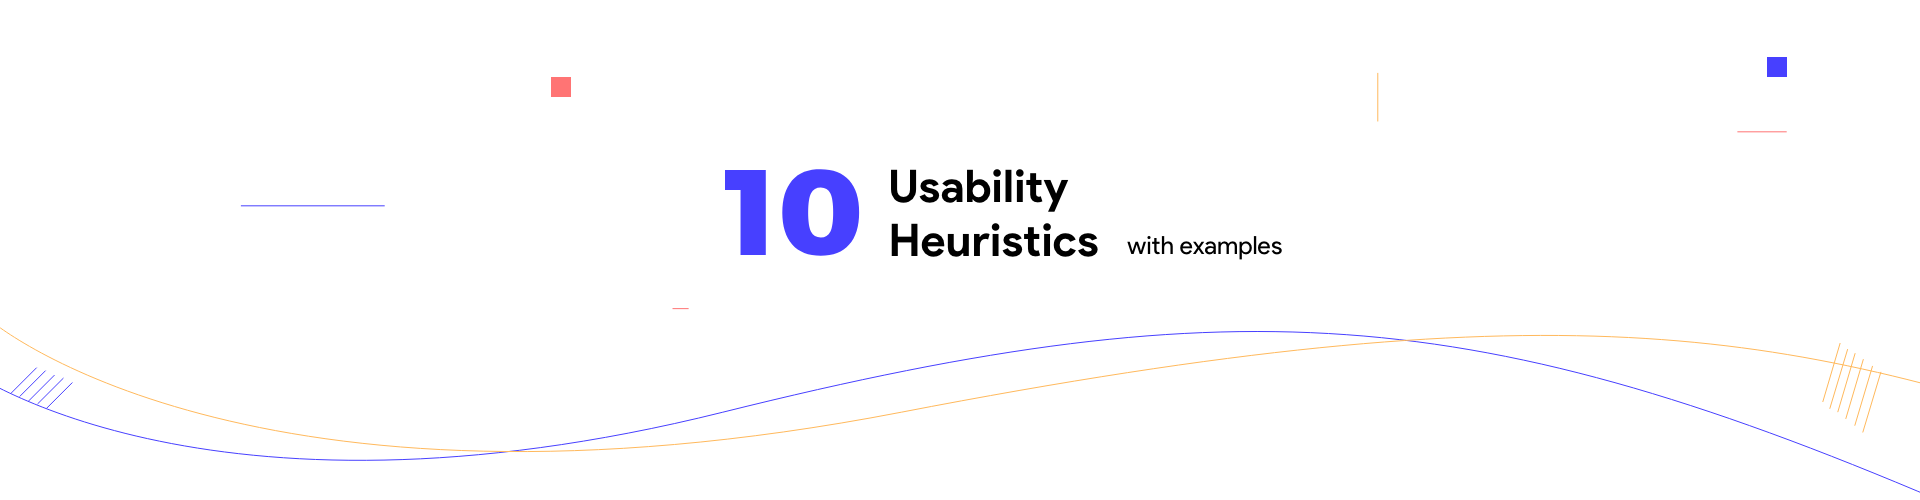 10 usability heuristics with examples